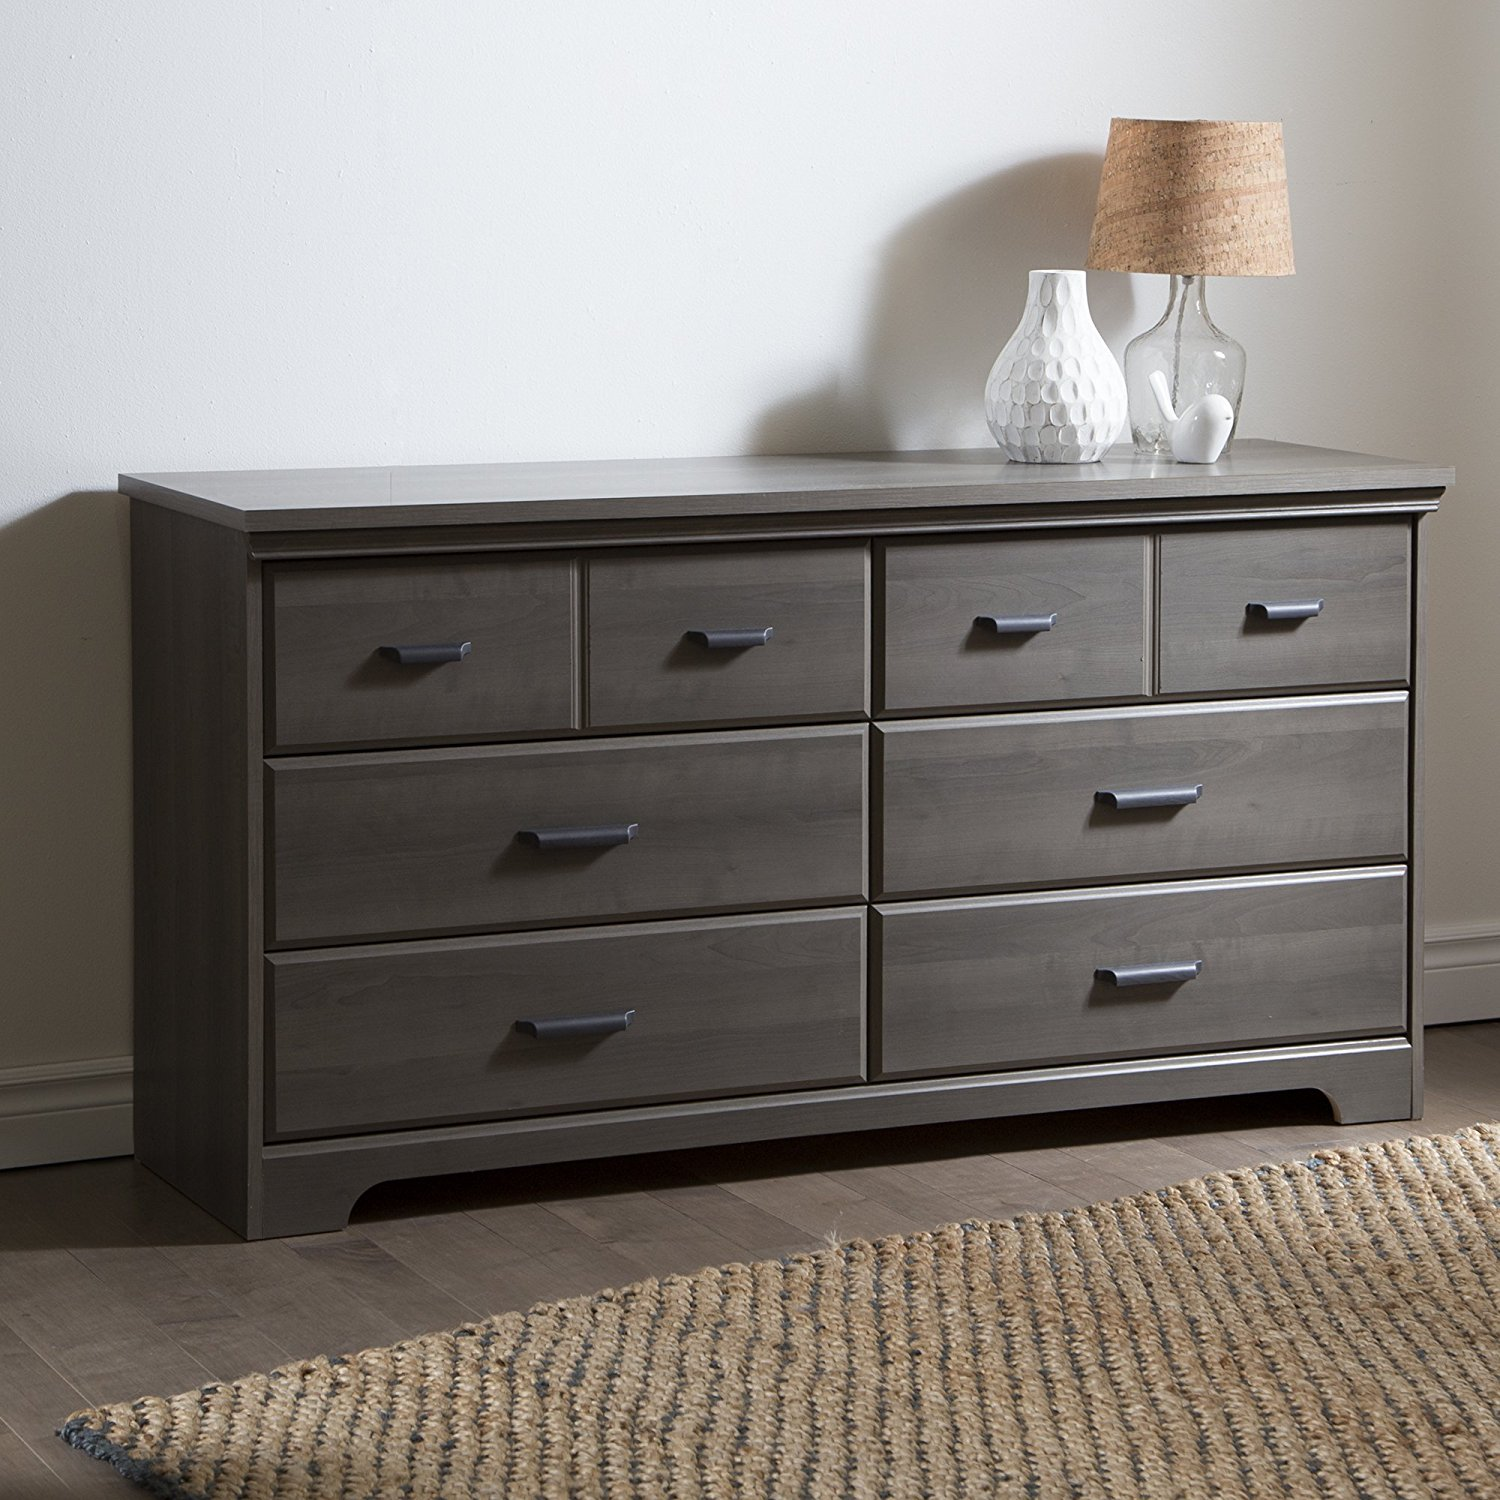 Image of: Oversized Tall Dresser